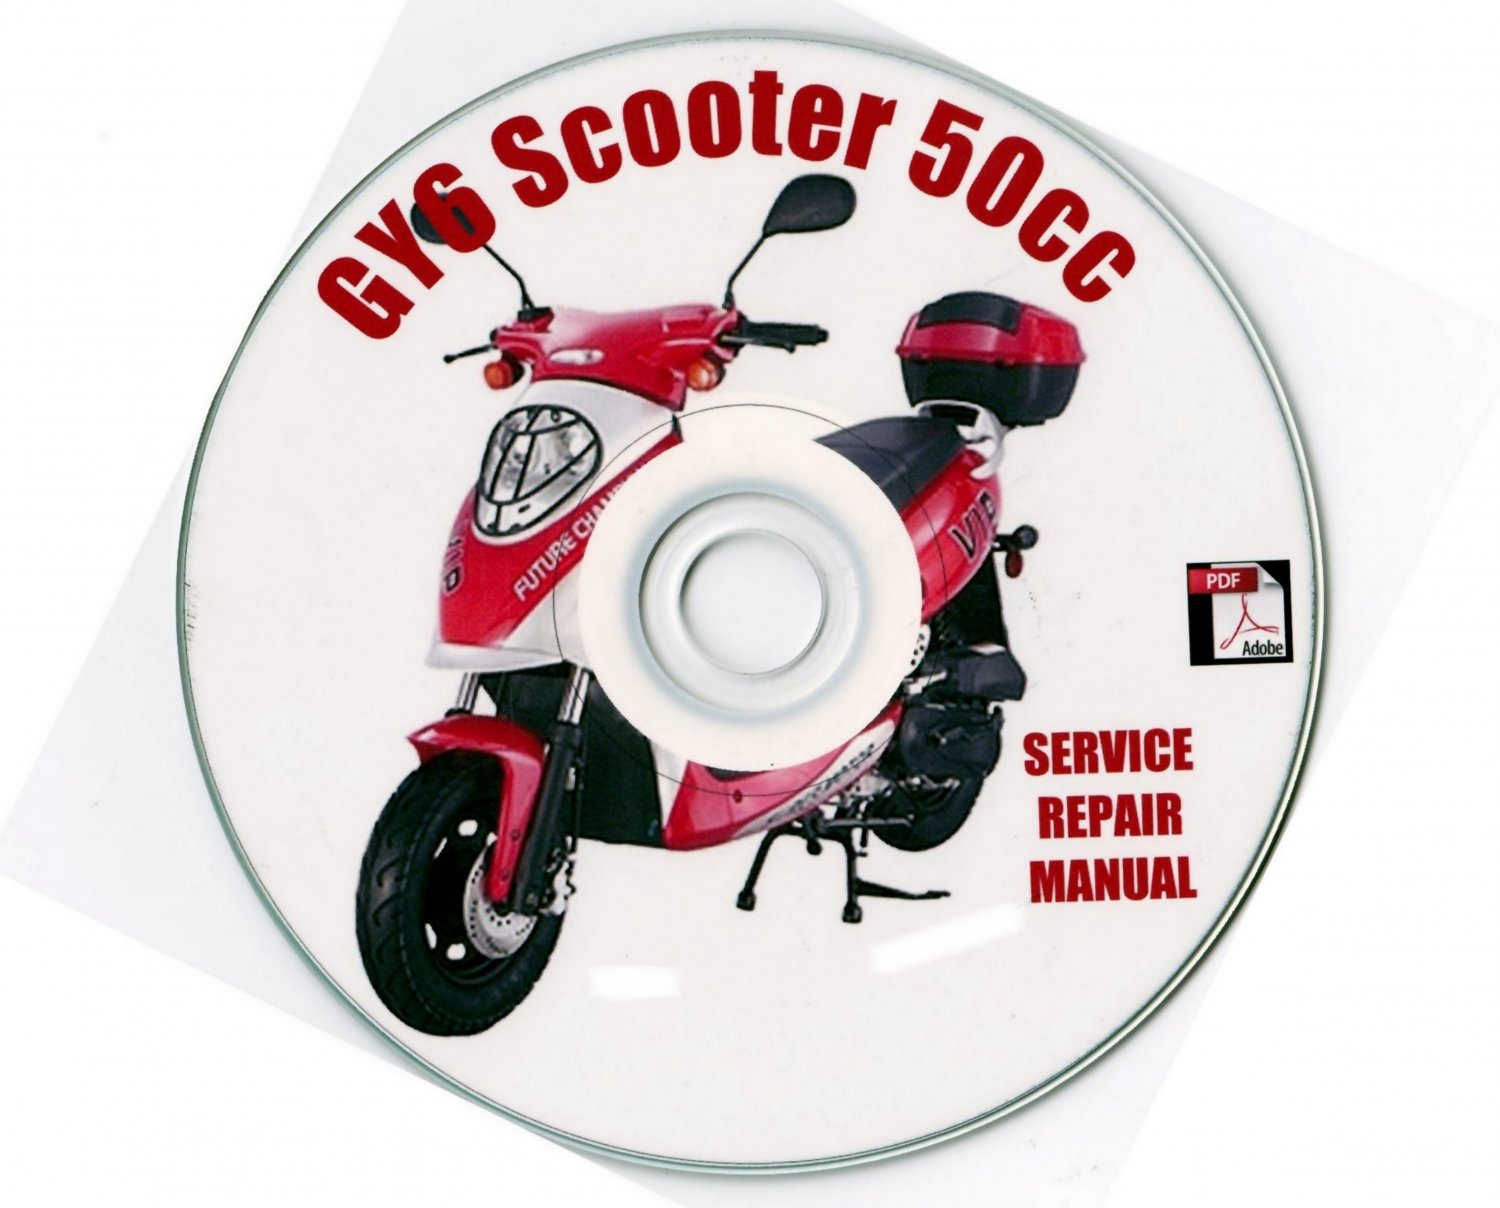 scooter 50cc gy6 prodigy peace jcl shen repair manual on cd fix rh ecrater co uk Fym ATV Parts Fym Agriculture